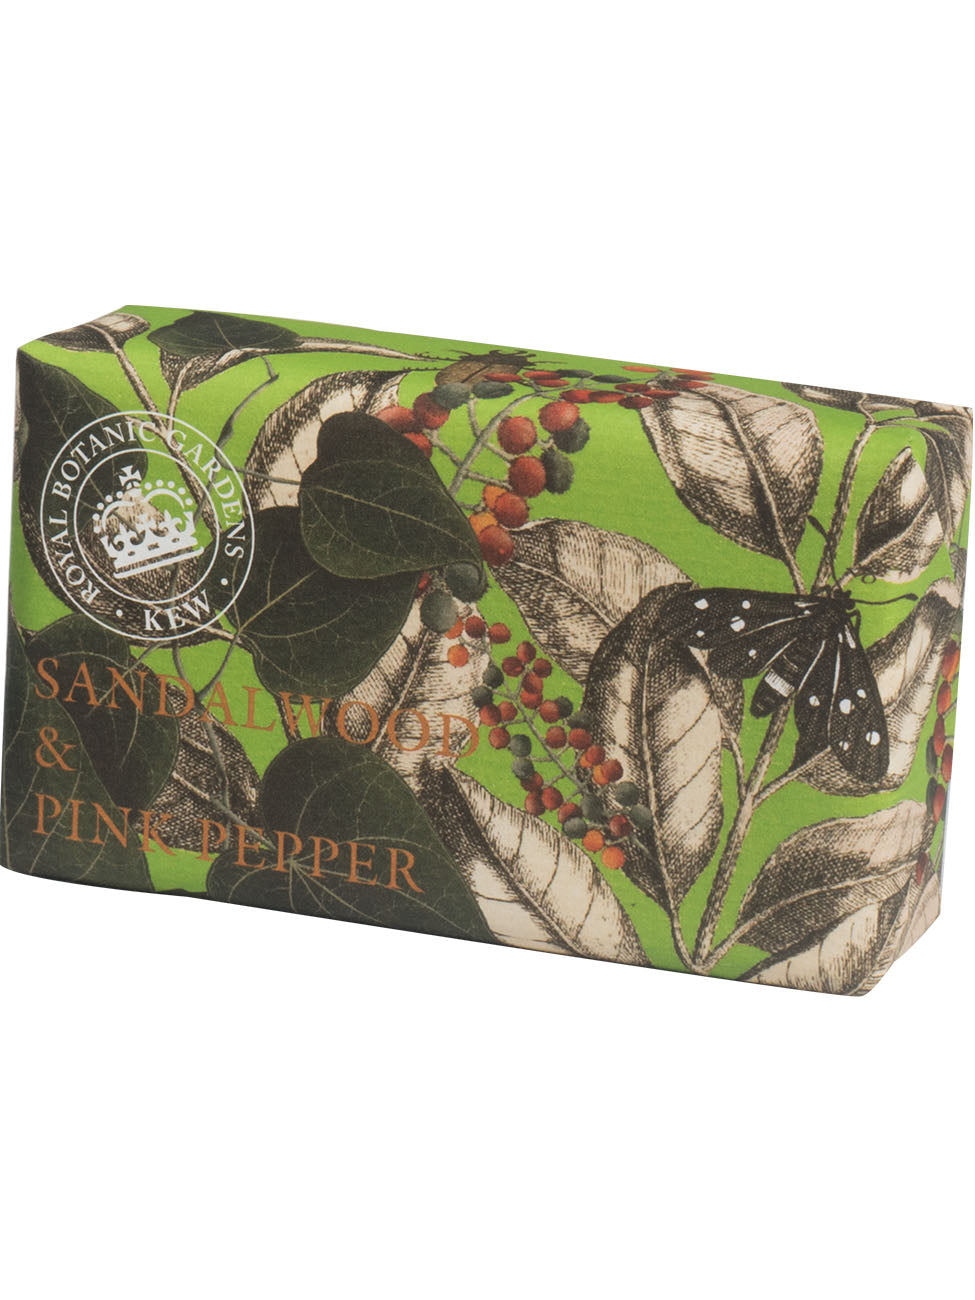 Royal Kew Gardens - Sandalwood & Pink Peppercorn Soap